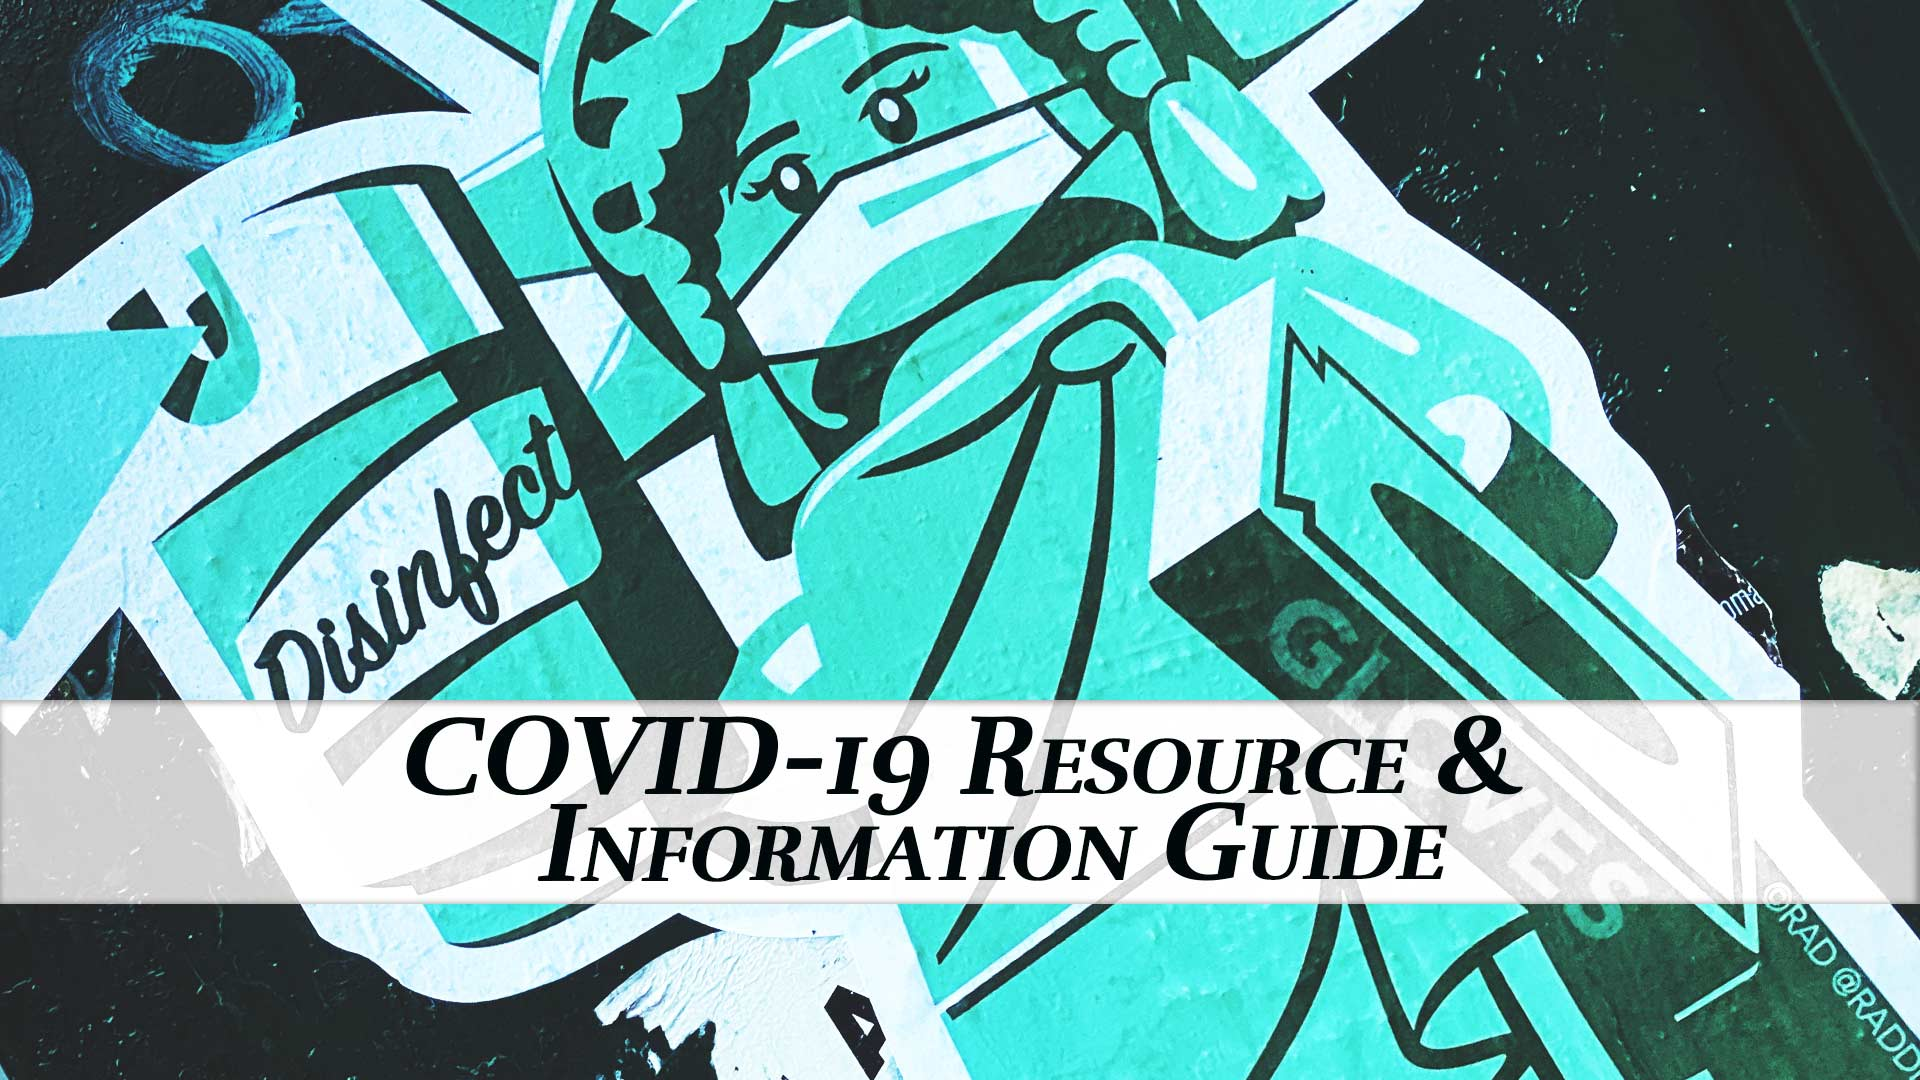 COVID-19 Resource and Information Guide